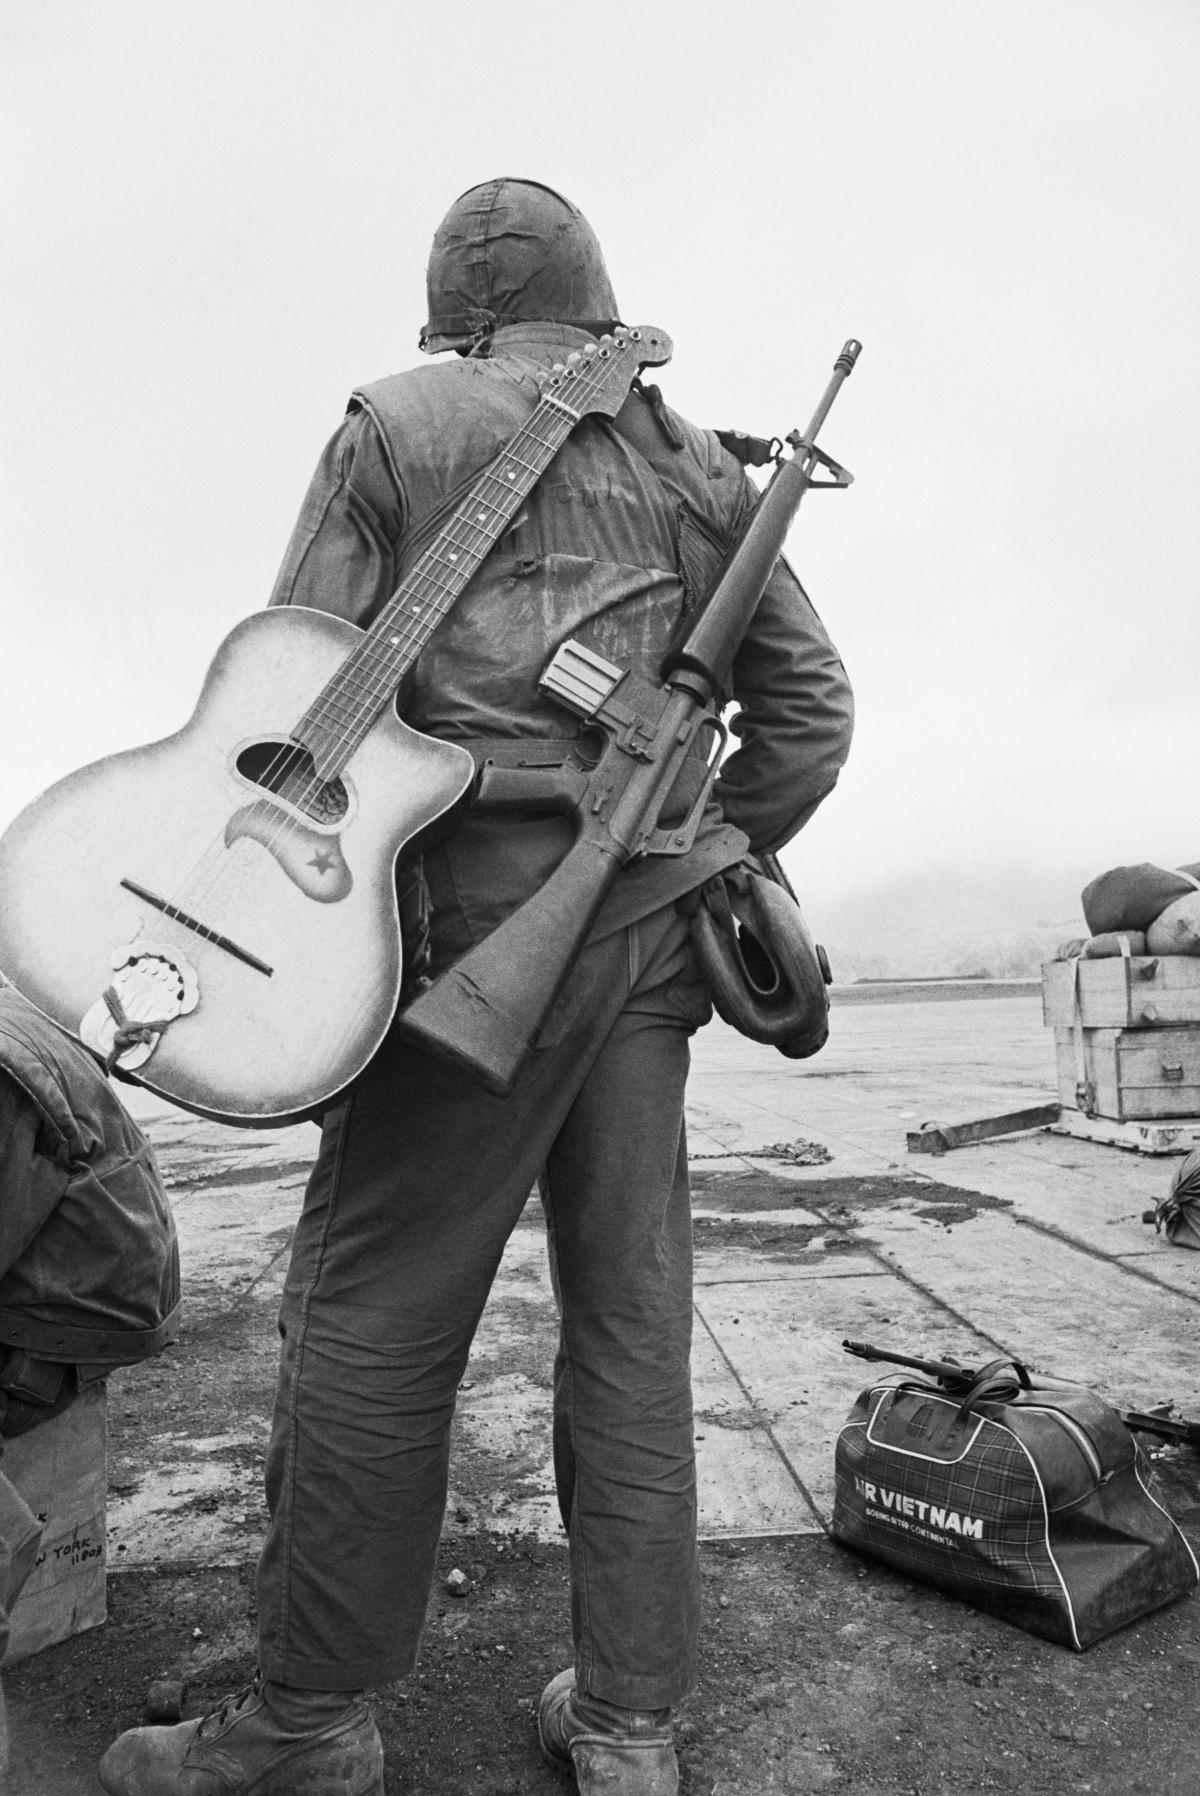 Black and white photo of a soldier with an M16 and a guitar slung over his back.